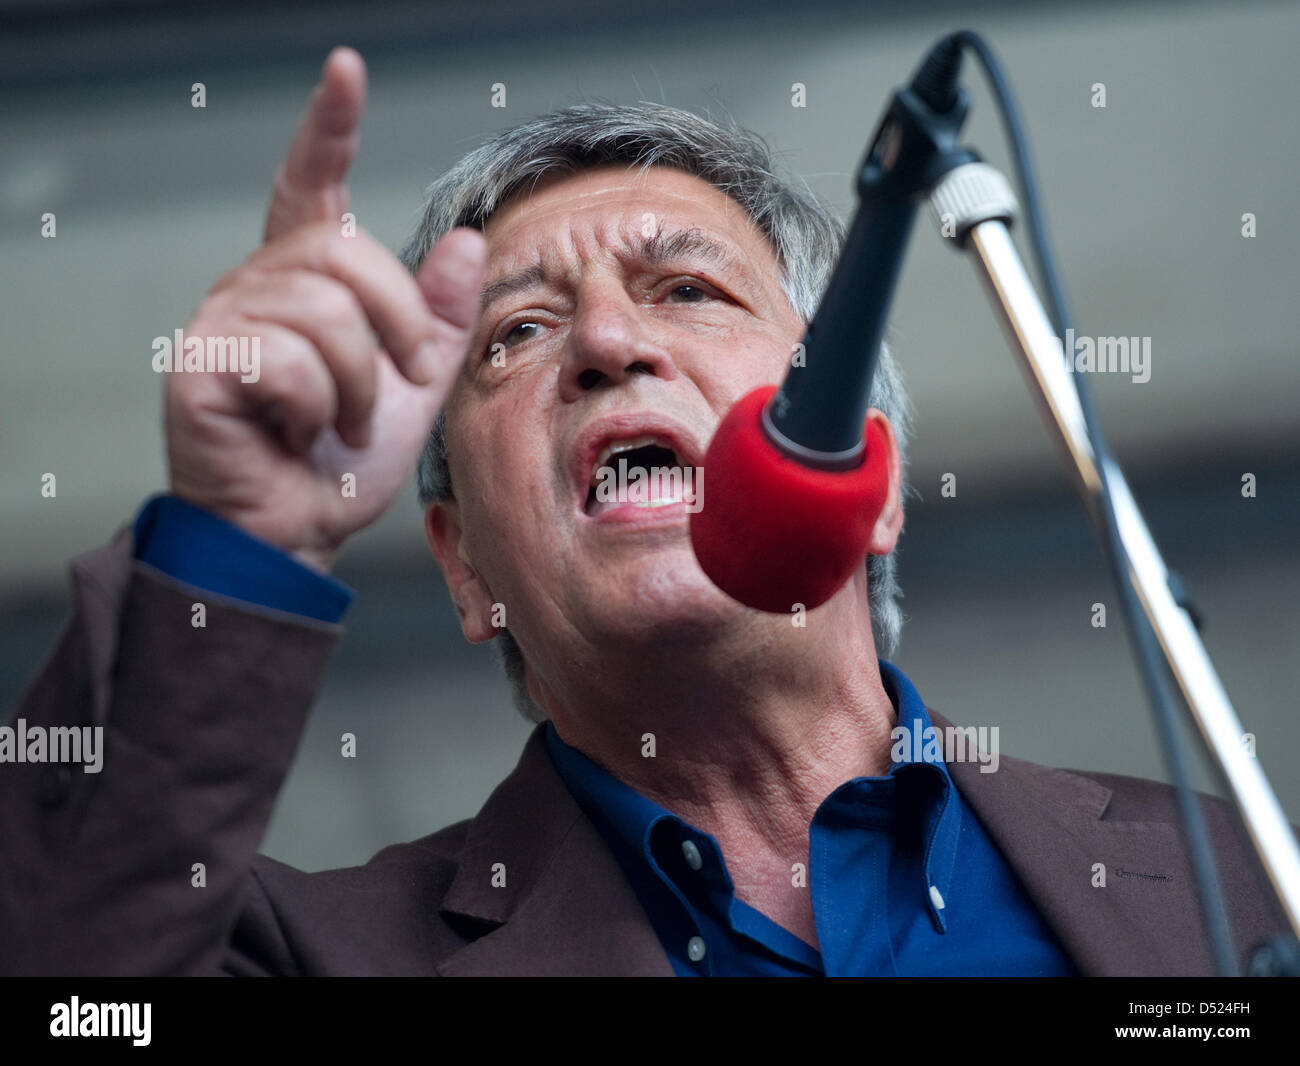 Social Democrats (SPD)parliamentarian and laureate of Alternative Nobel Prize, Hermann Scheer during a rally - Stock Image